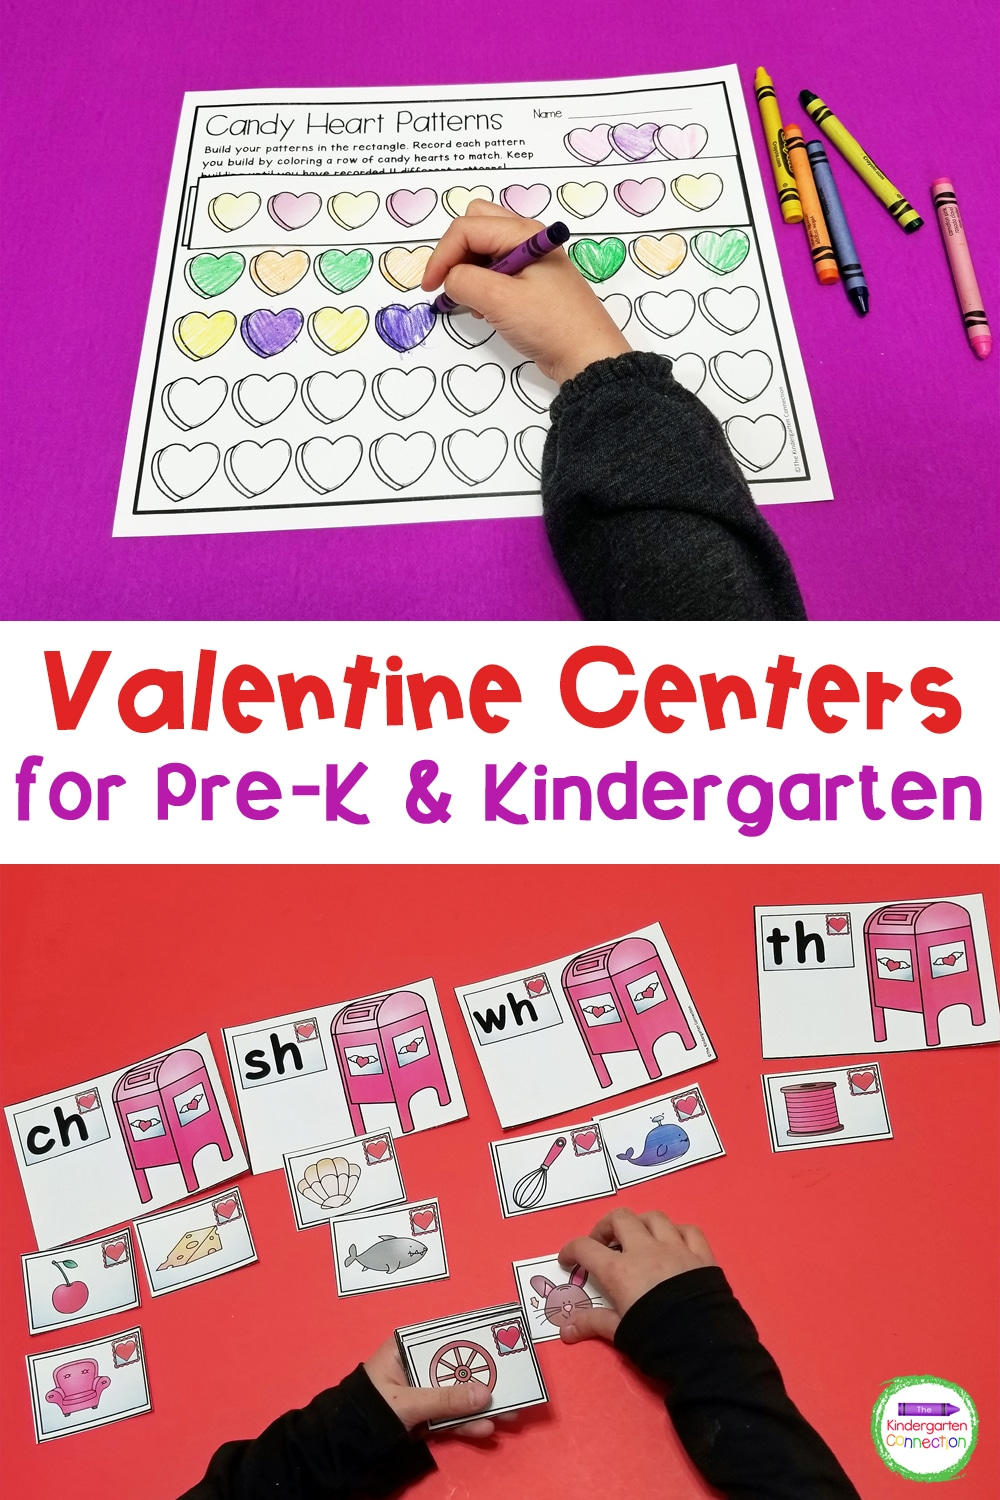 These Valentine's Day Centers for Pre-K & Kindergarten provide tons of hands-on, math and literacy activities that are perfect for February!